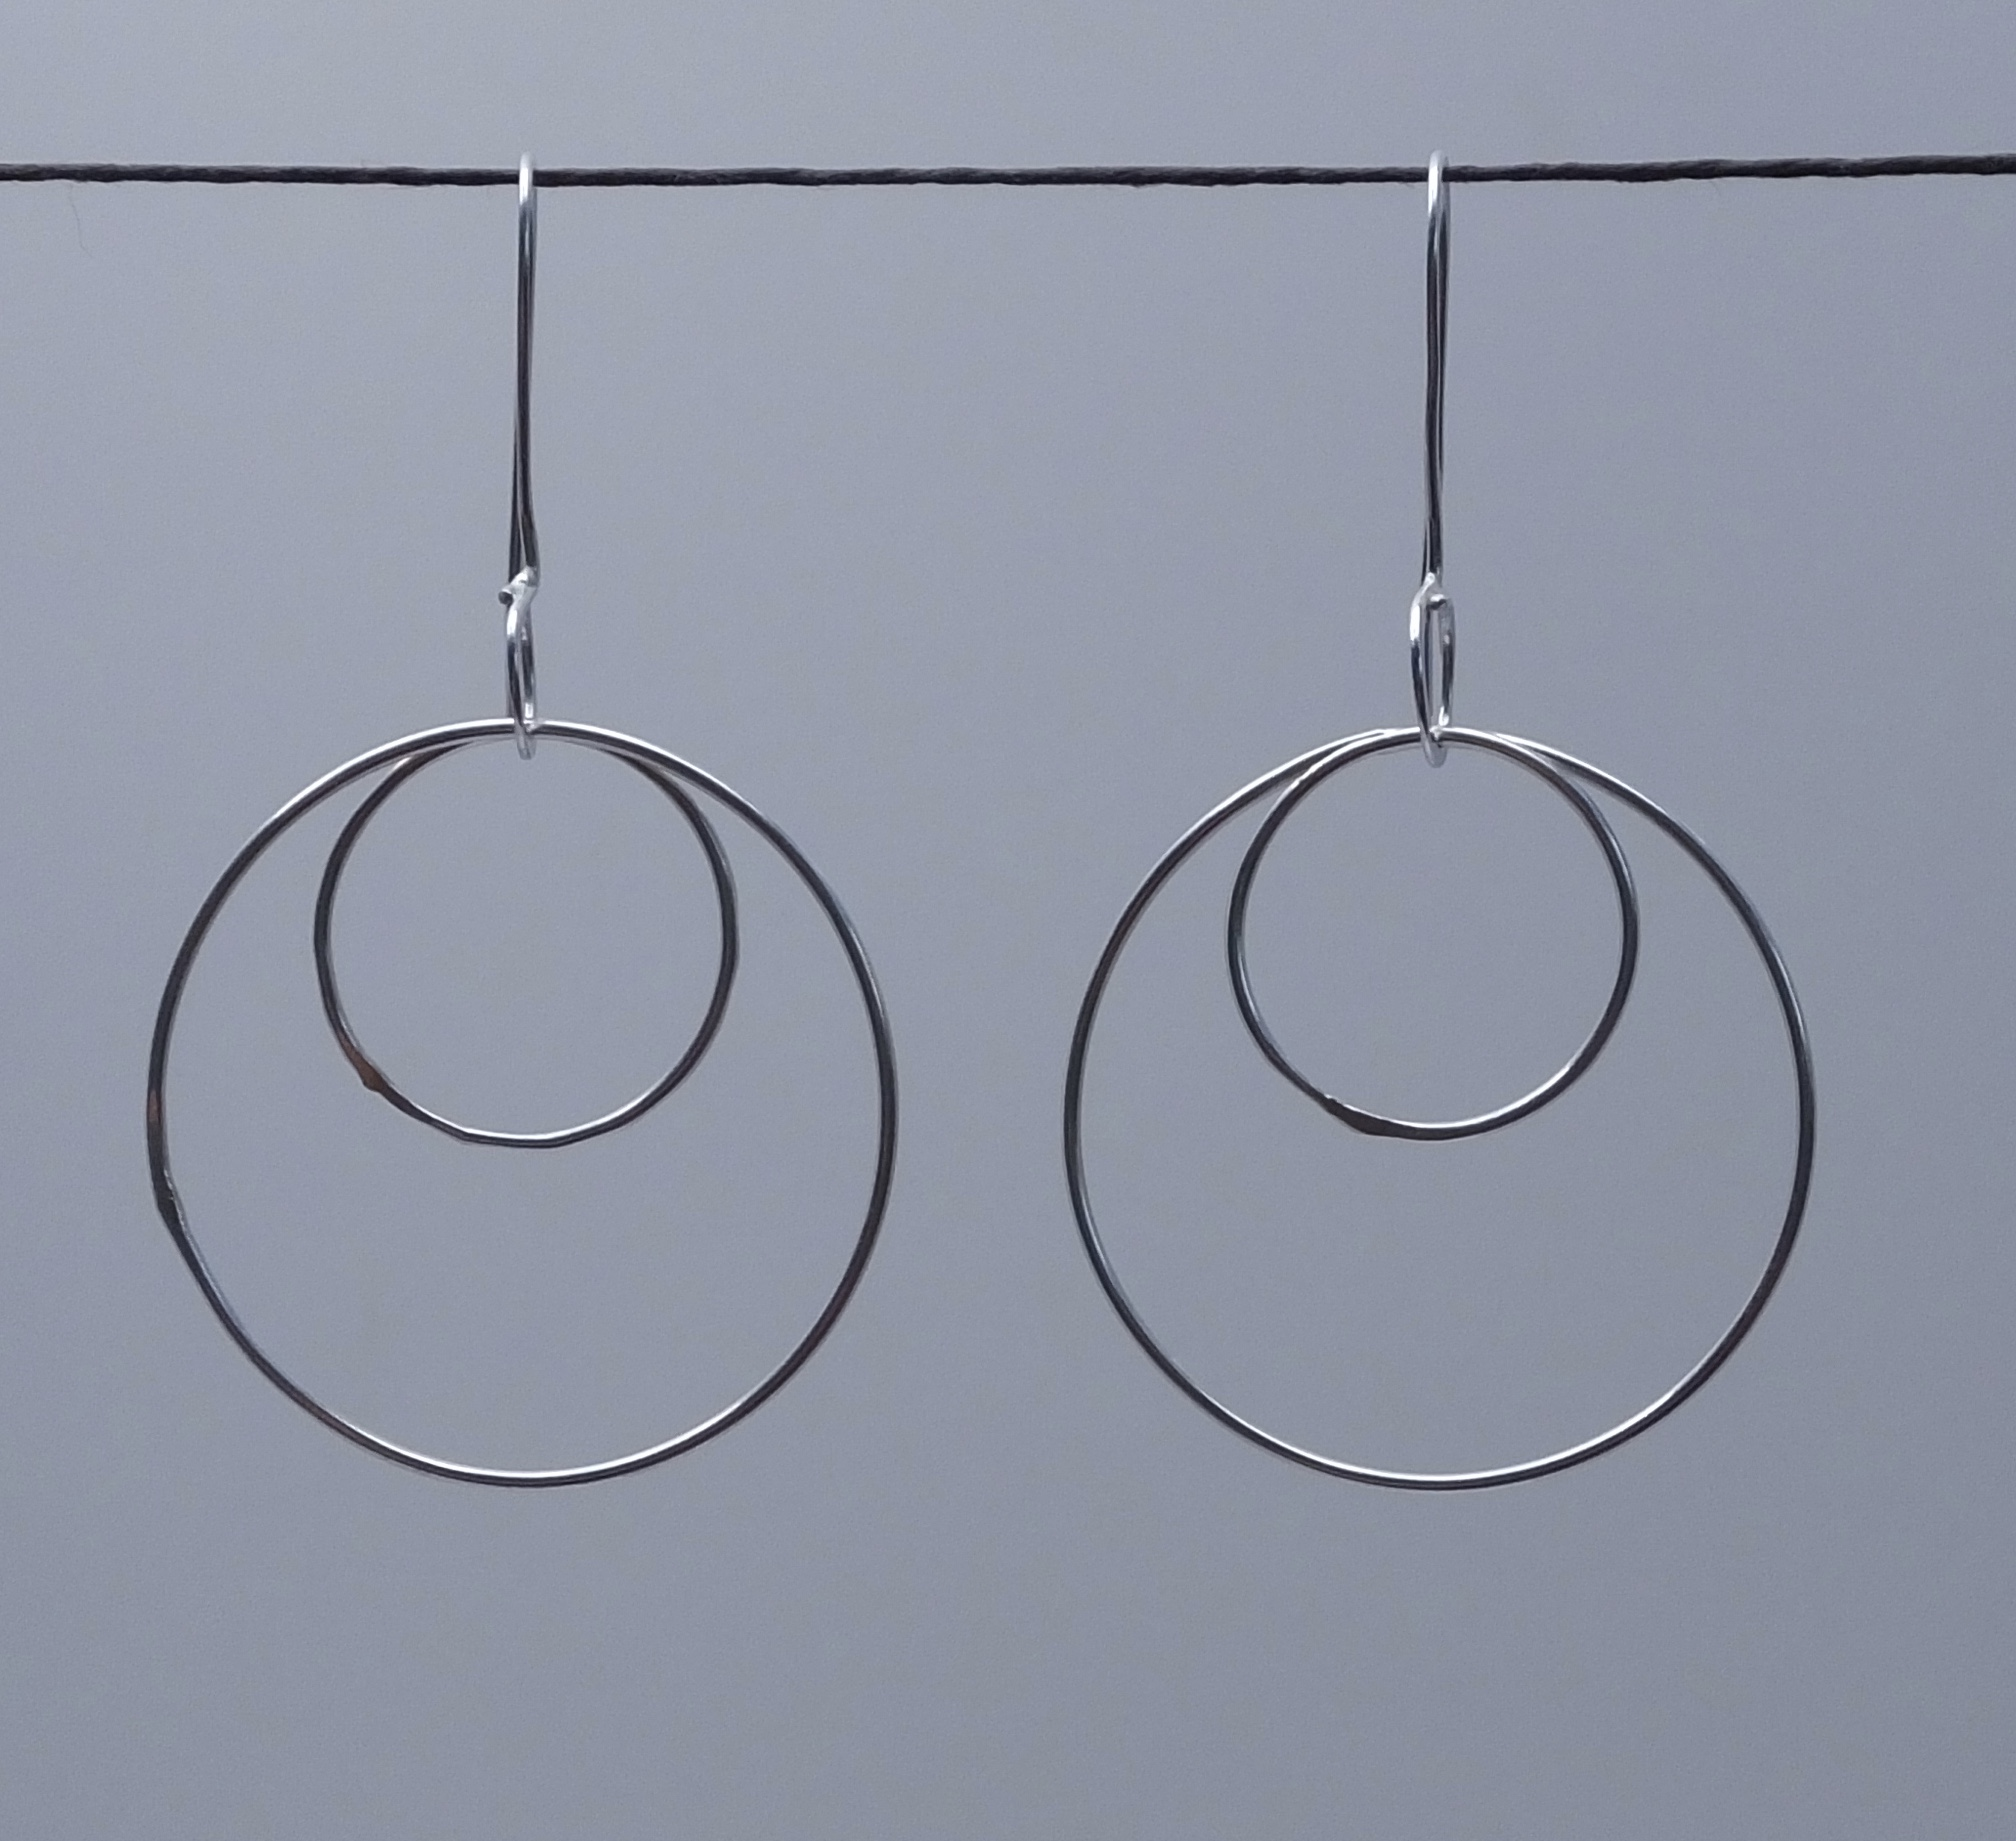 isabel plain earrings xs circle product lennse